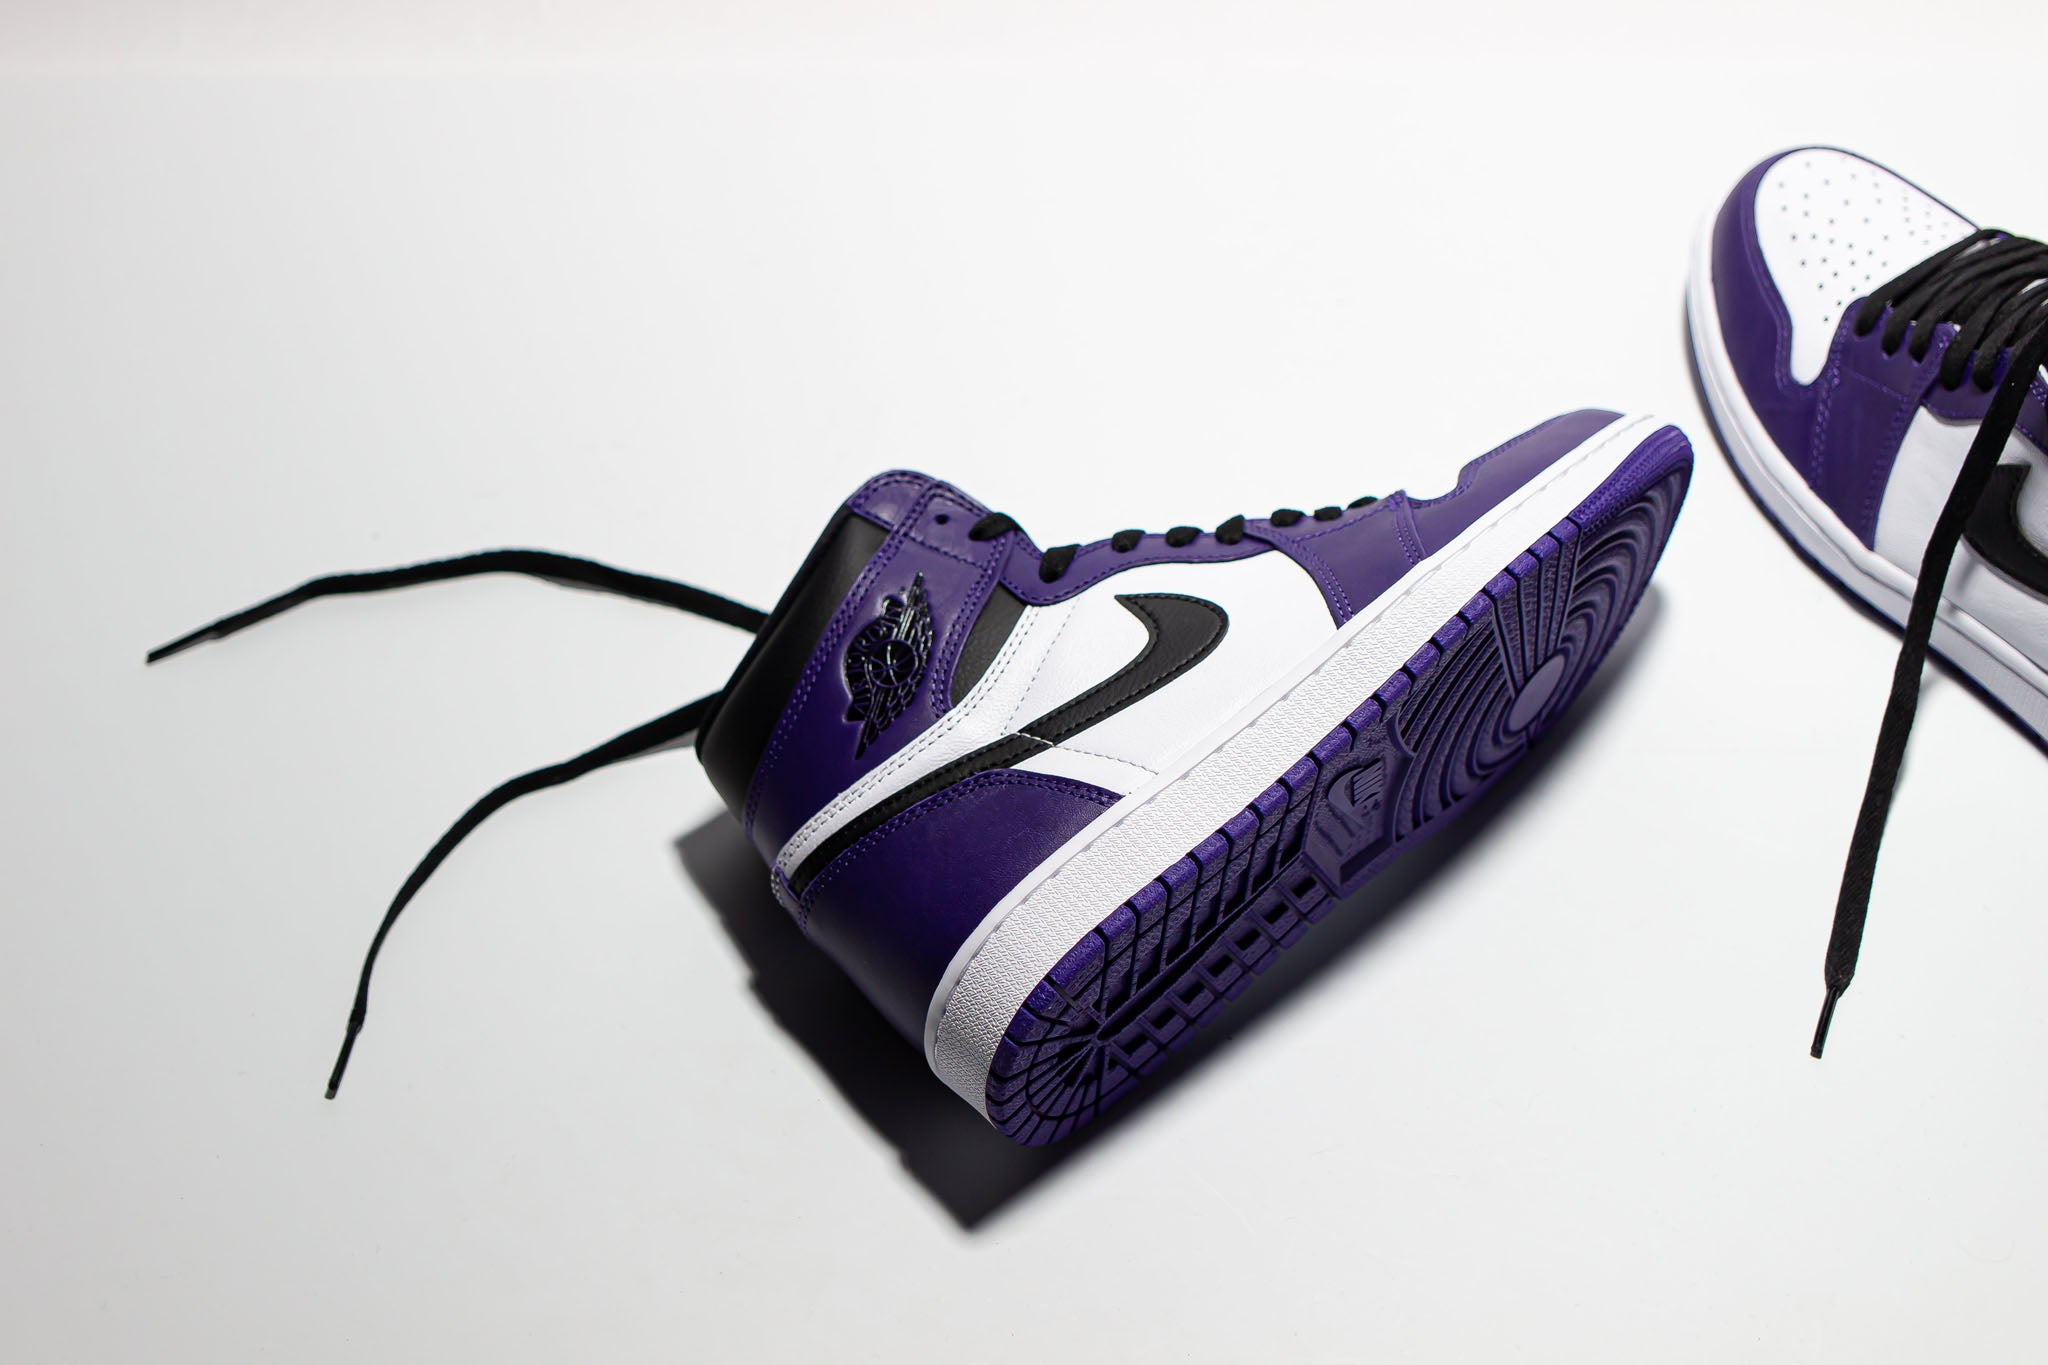 jordan-1-court-purple-4